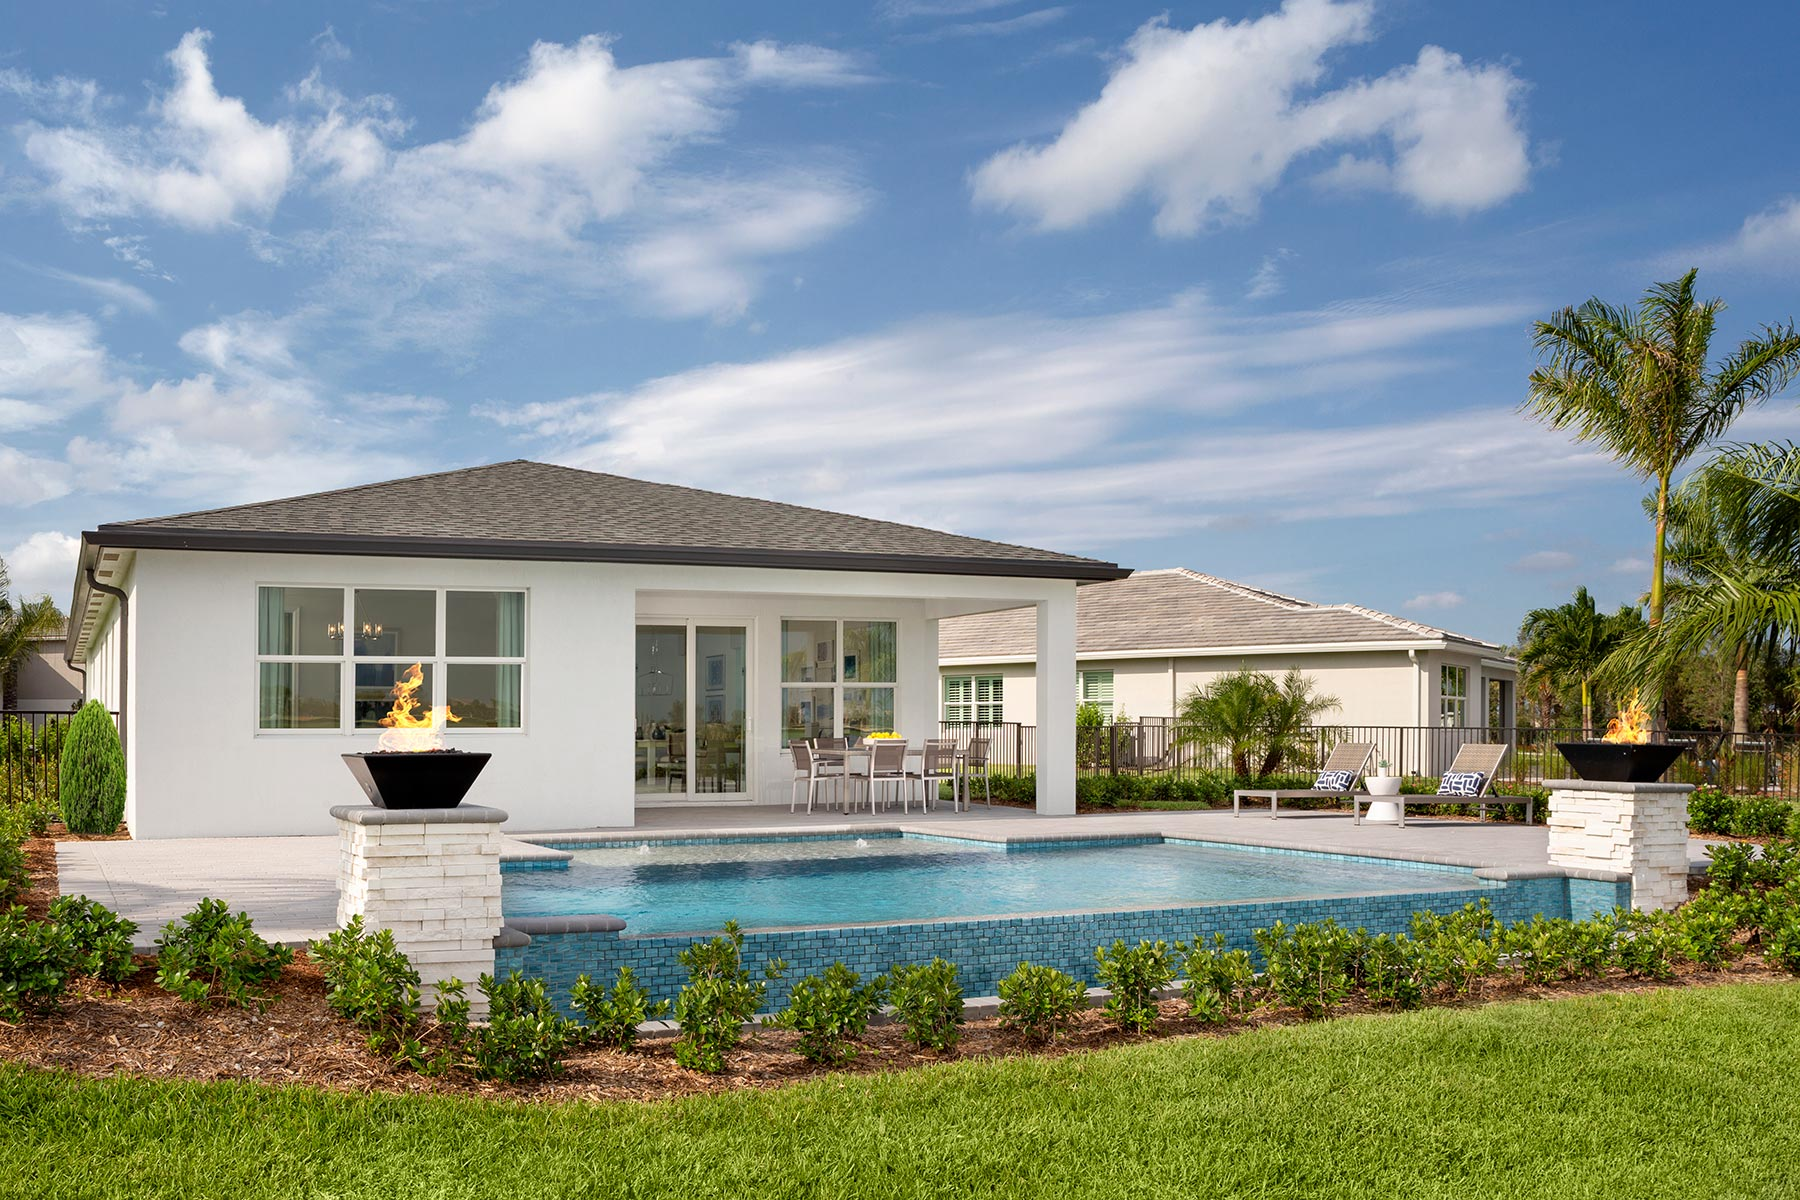 Tradition - Manderlie House Backyard in Port St. Lucie Florida by Mattamy Homes